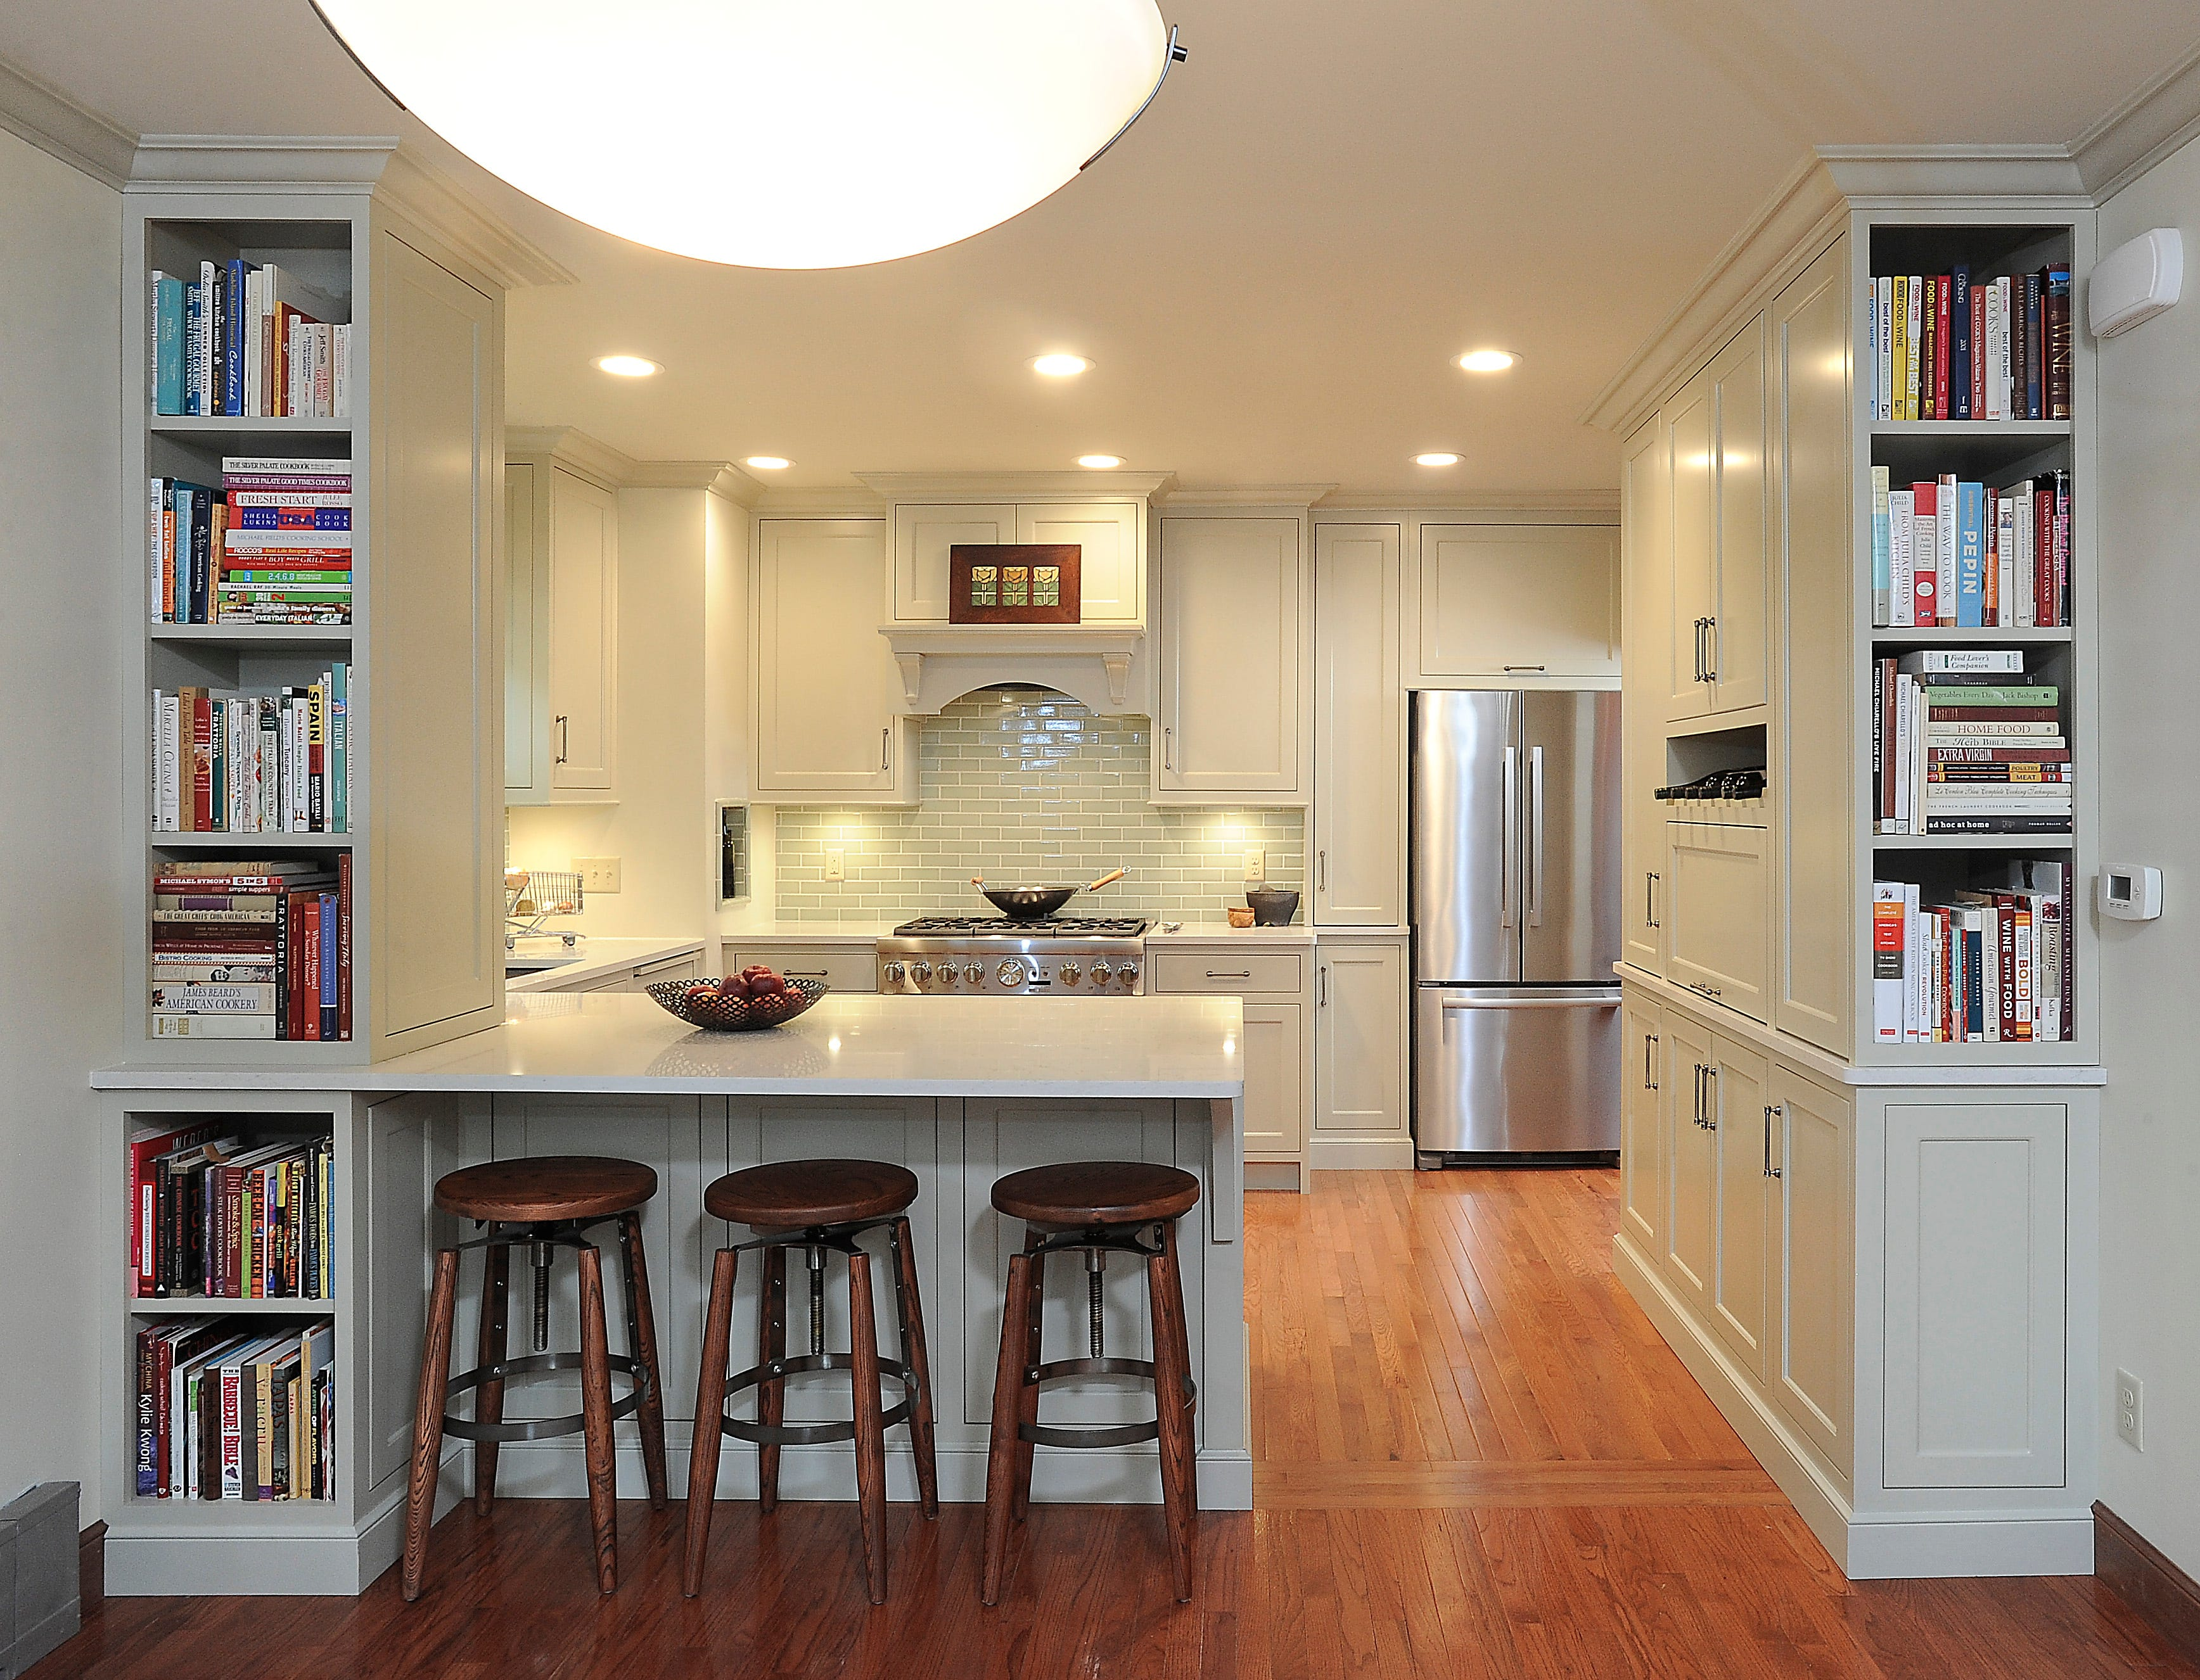 Good Everything About This Kitchen Was Designed With Purpose.